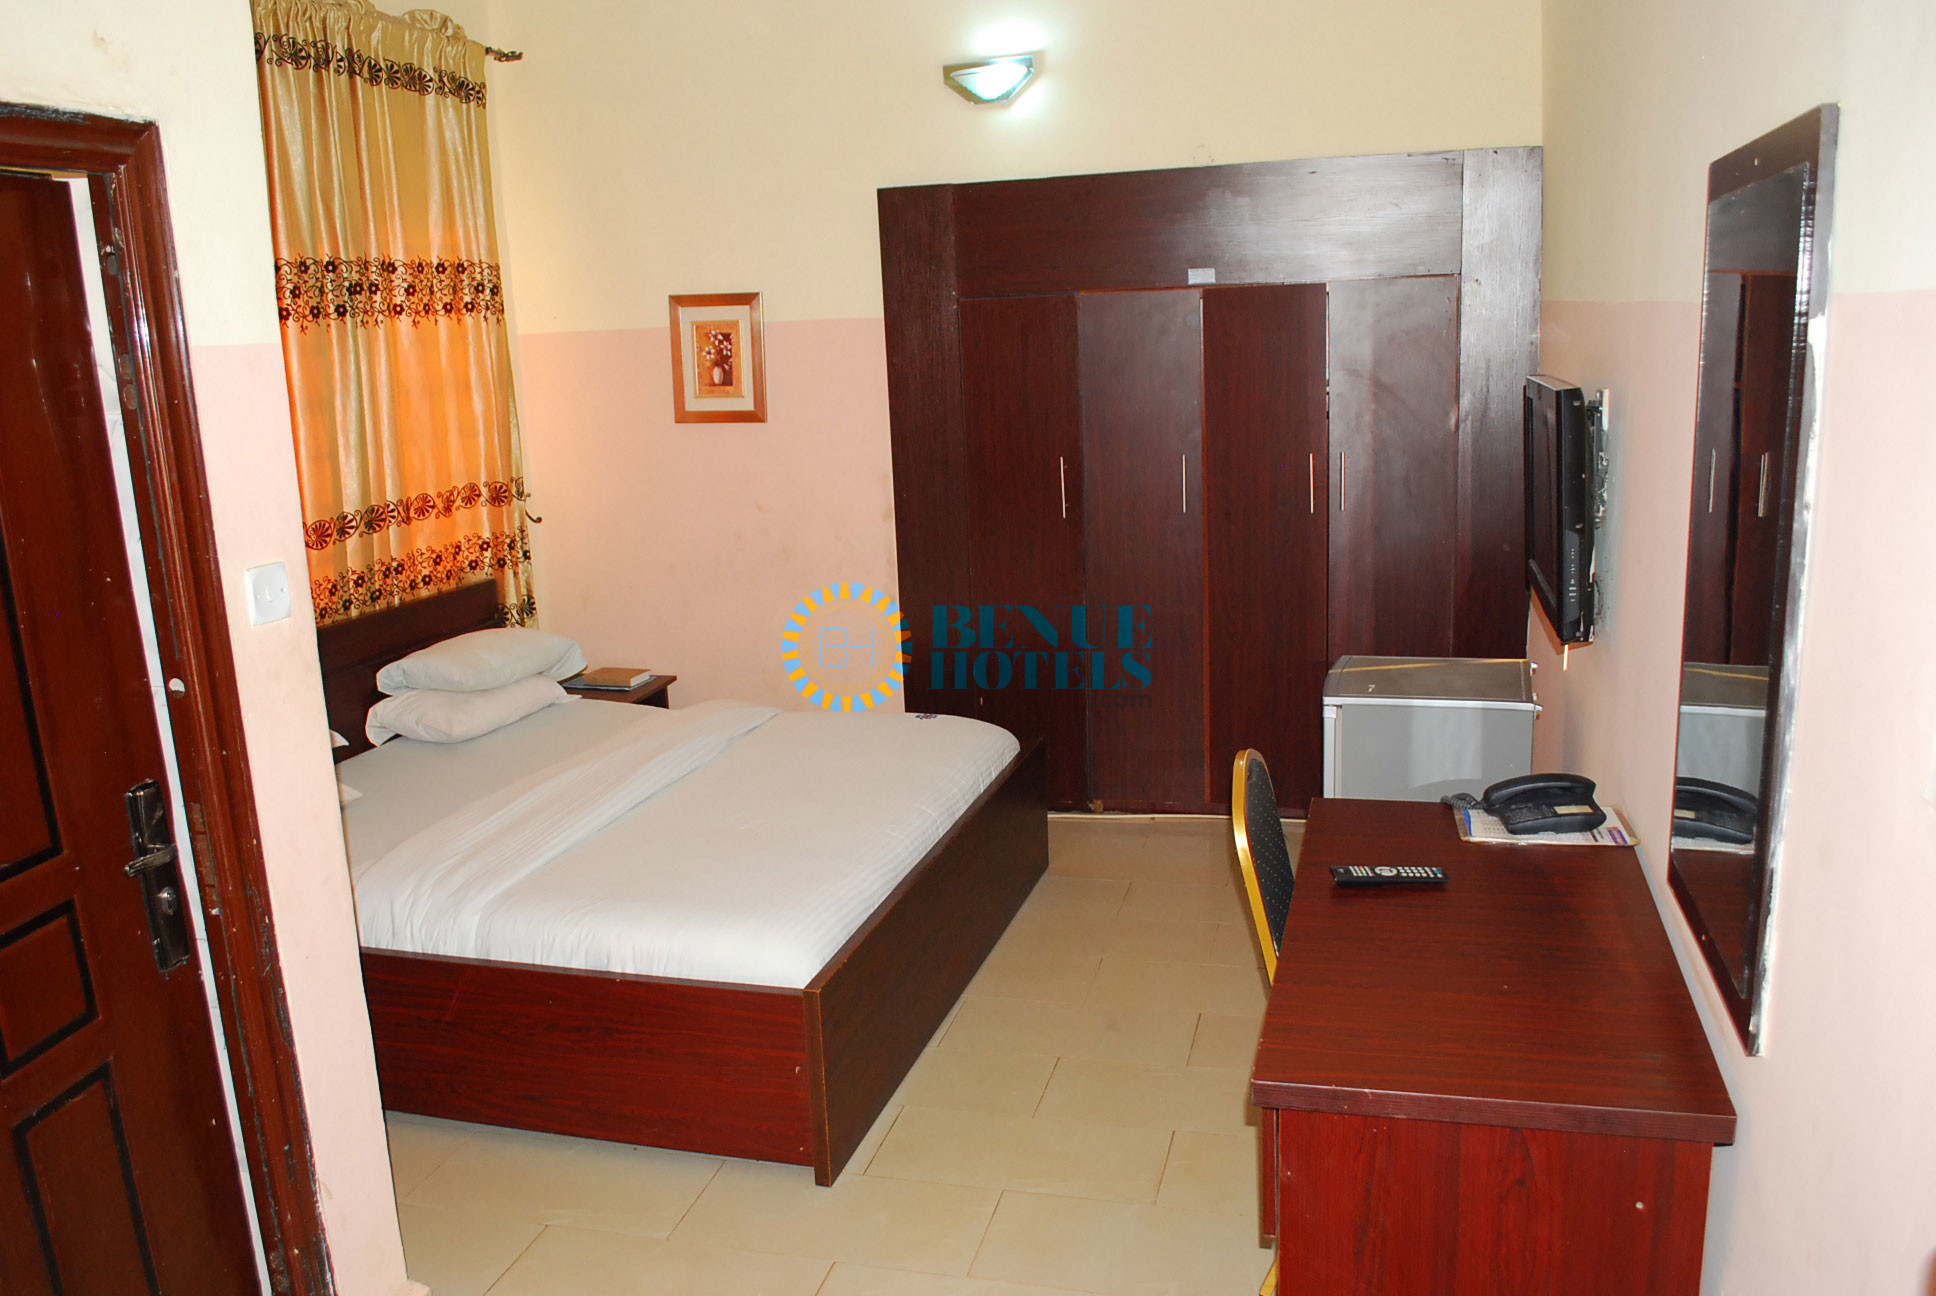 Diamond suites at apa agte hotel, otukpo, benue state